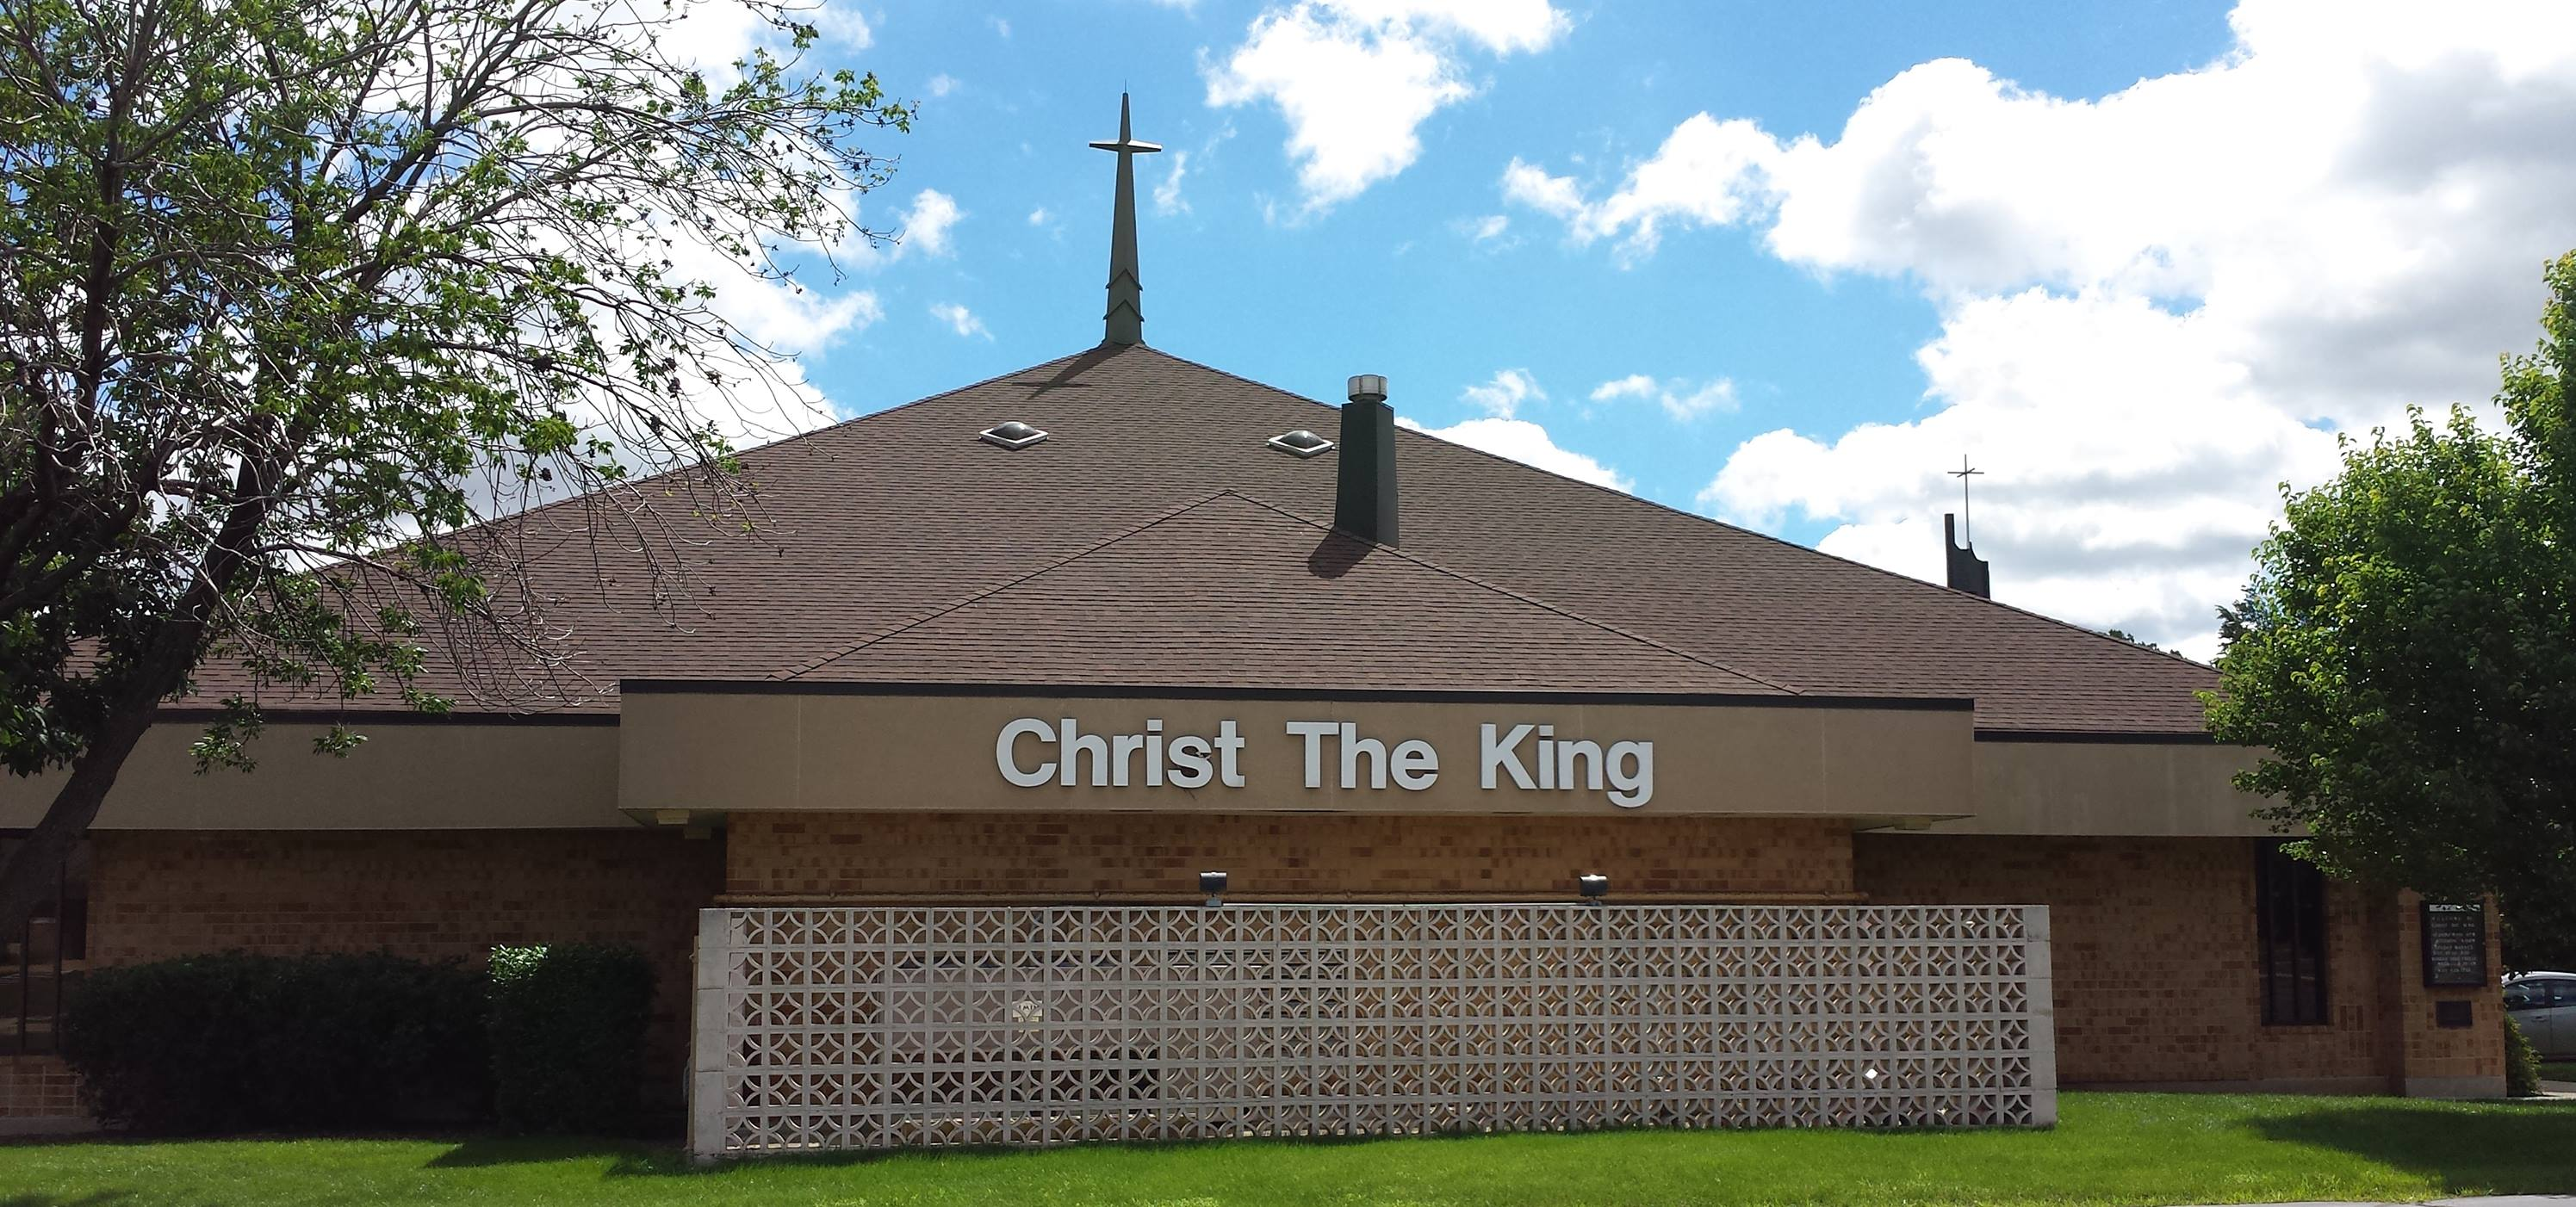 Christ The King - St Vincent DePaul